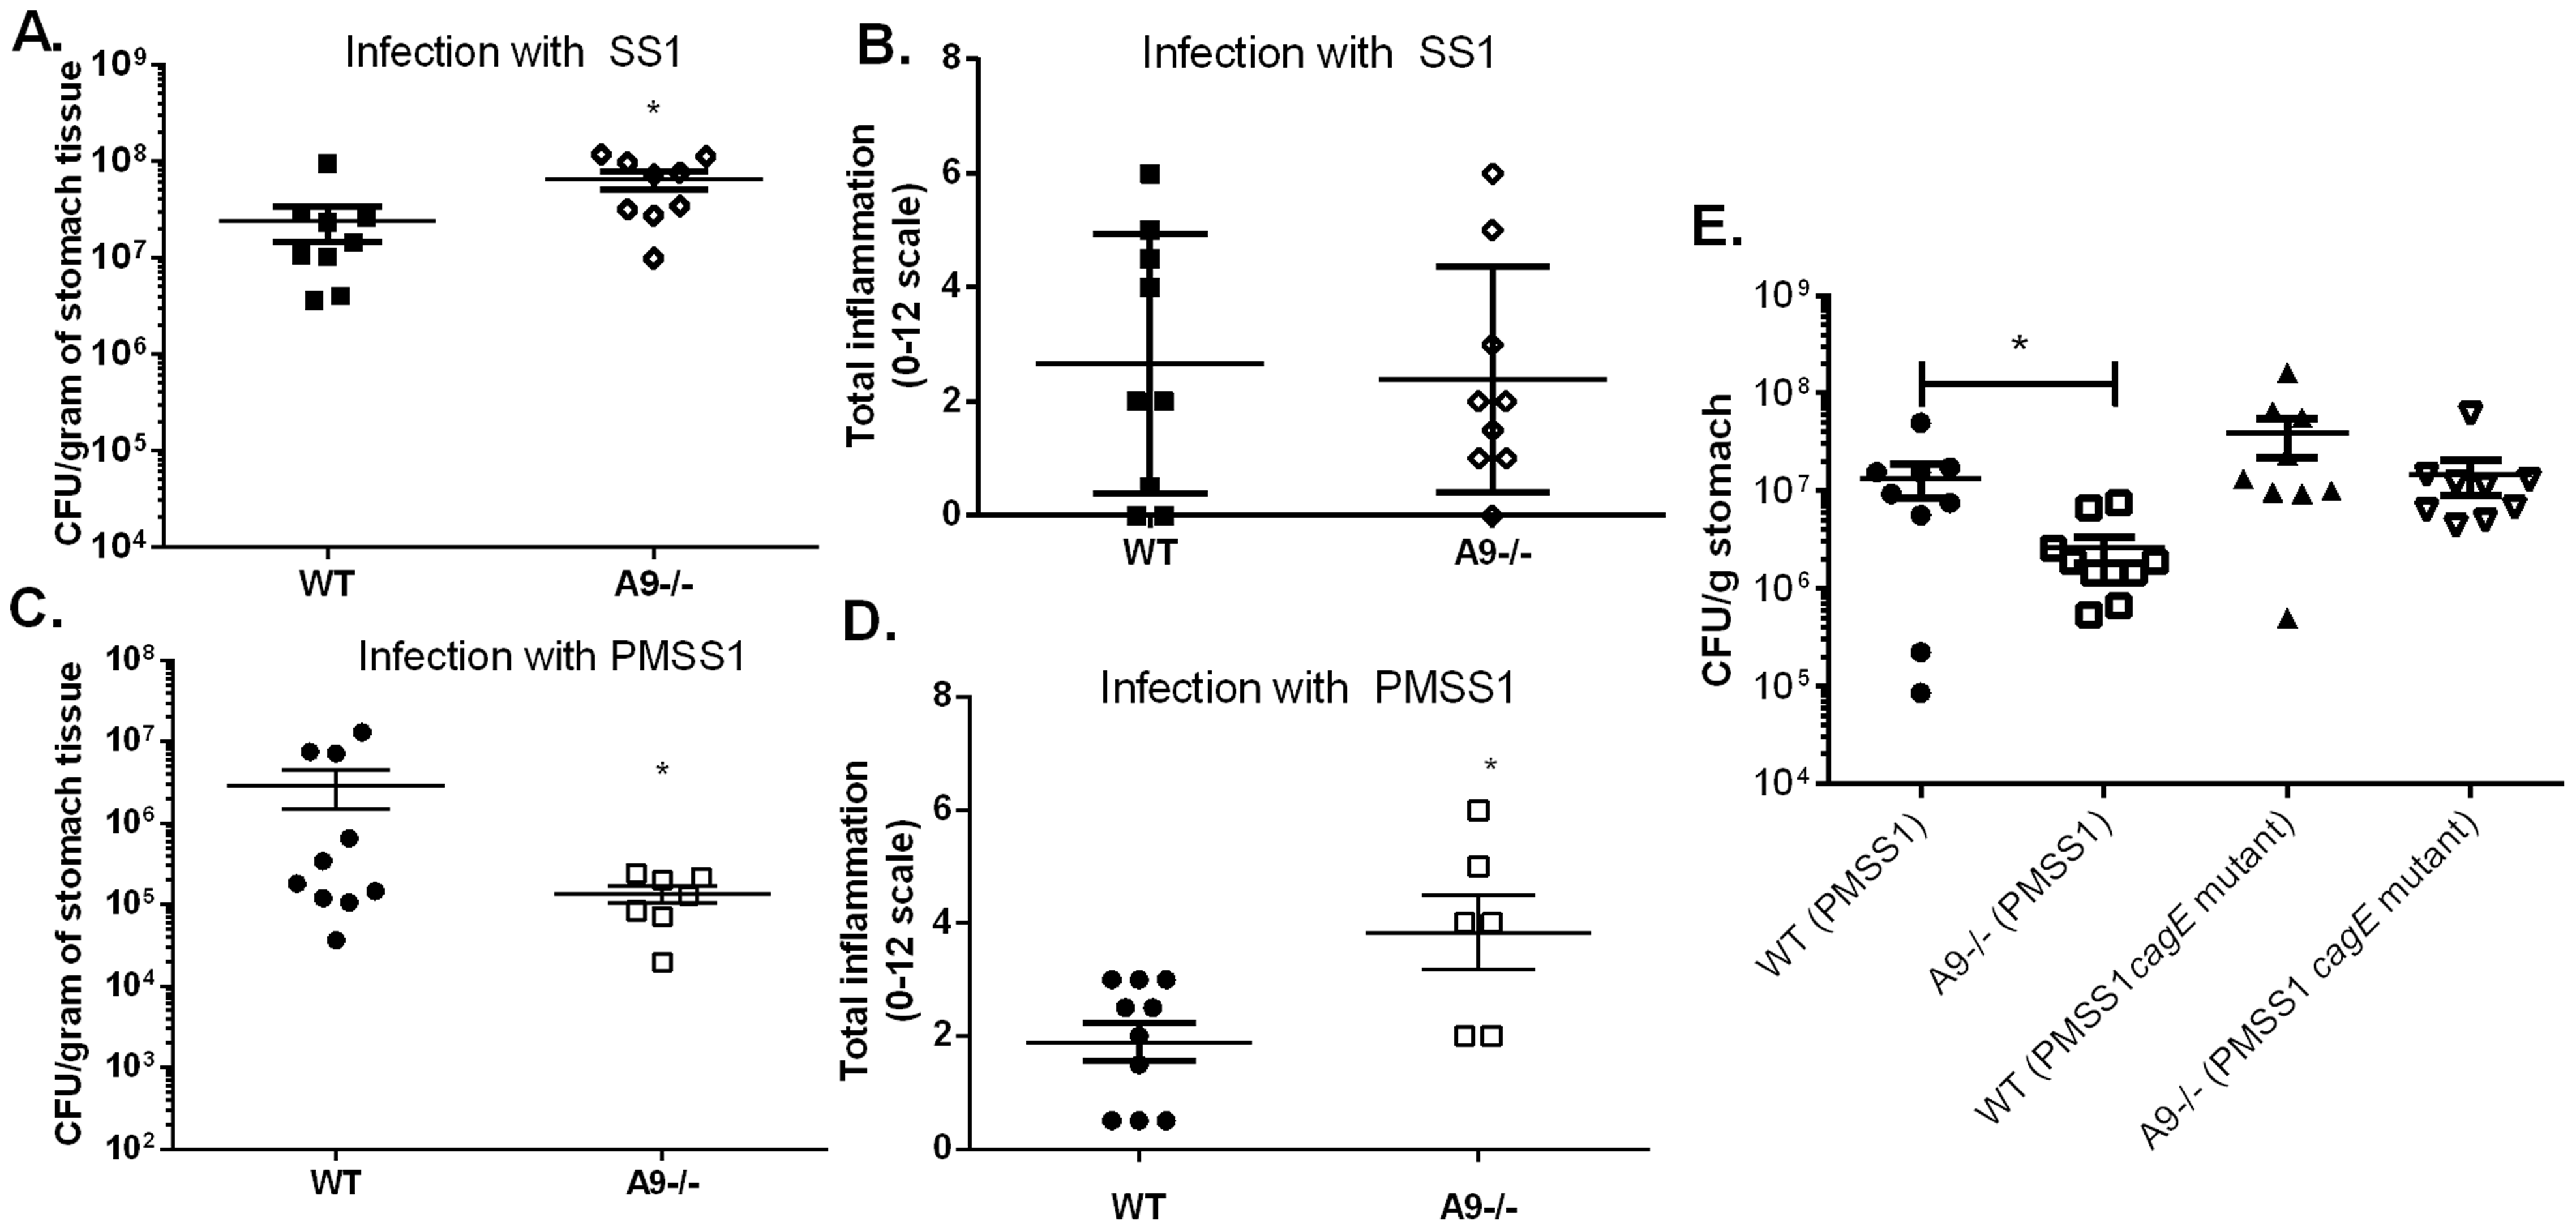 The presence of calprotectin increases bacterial burden and reduces inflammation in WT mice in a <i>cag</i> T4SS-dependent manner.